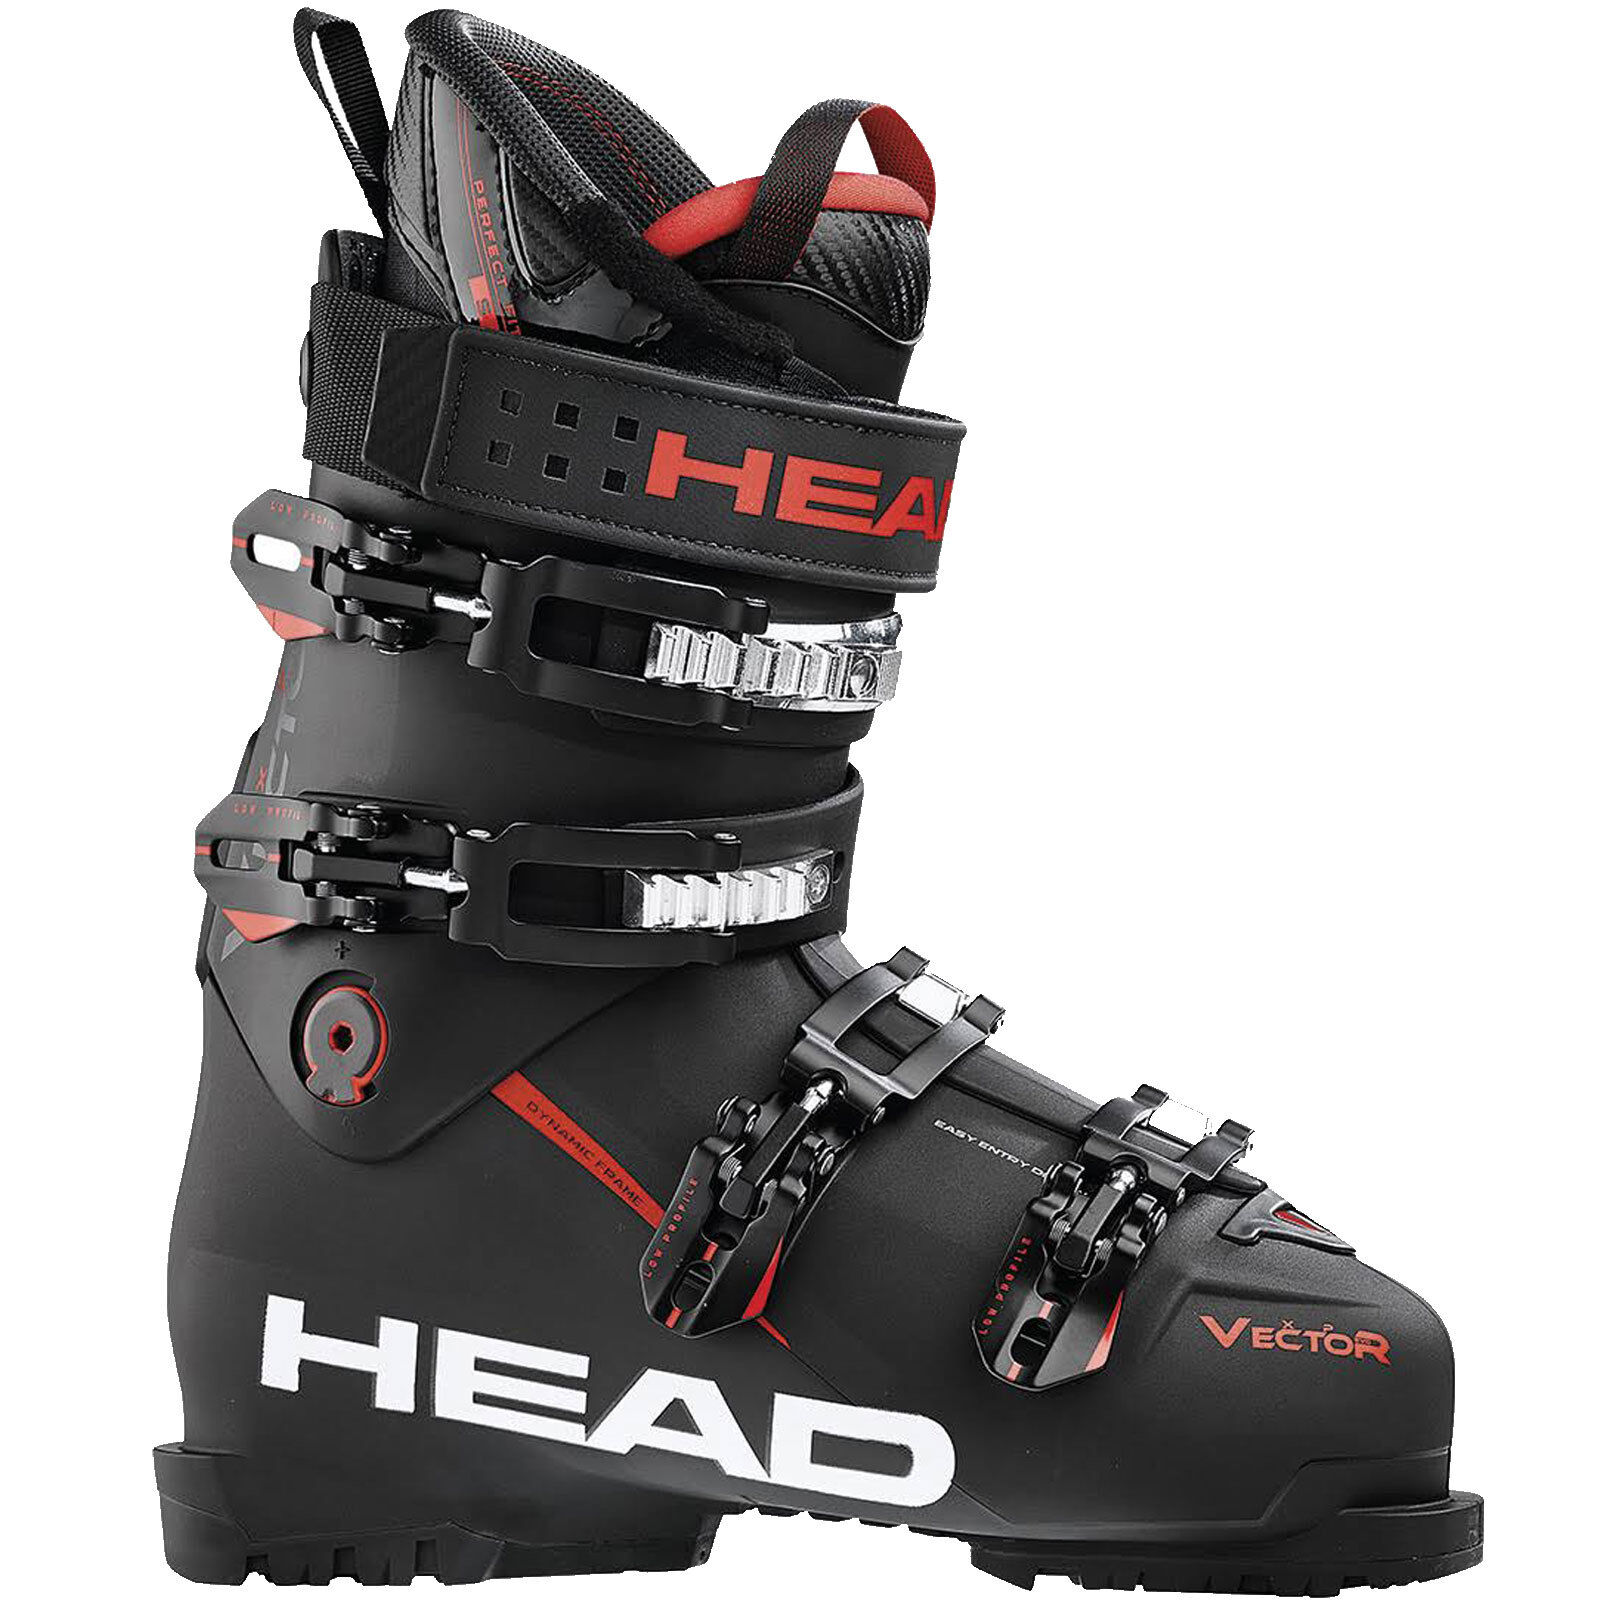 Head Vector Evo XP Men's -ski Boots Boots Ski Boots Ski shoes Boots Alpine